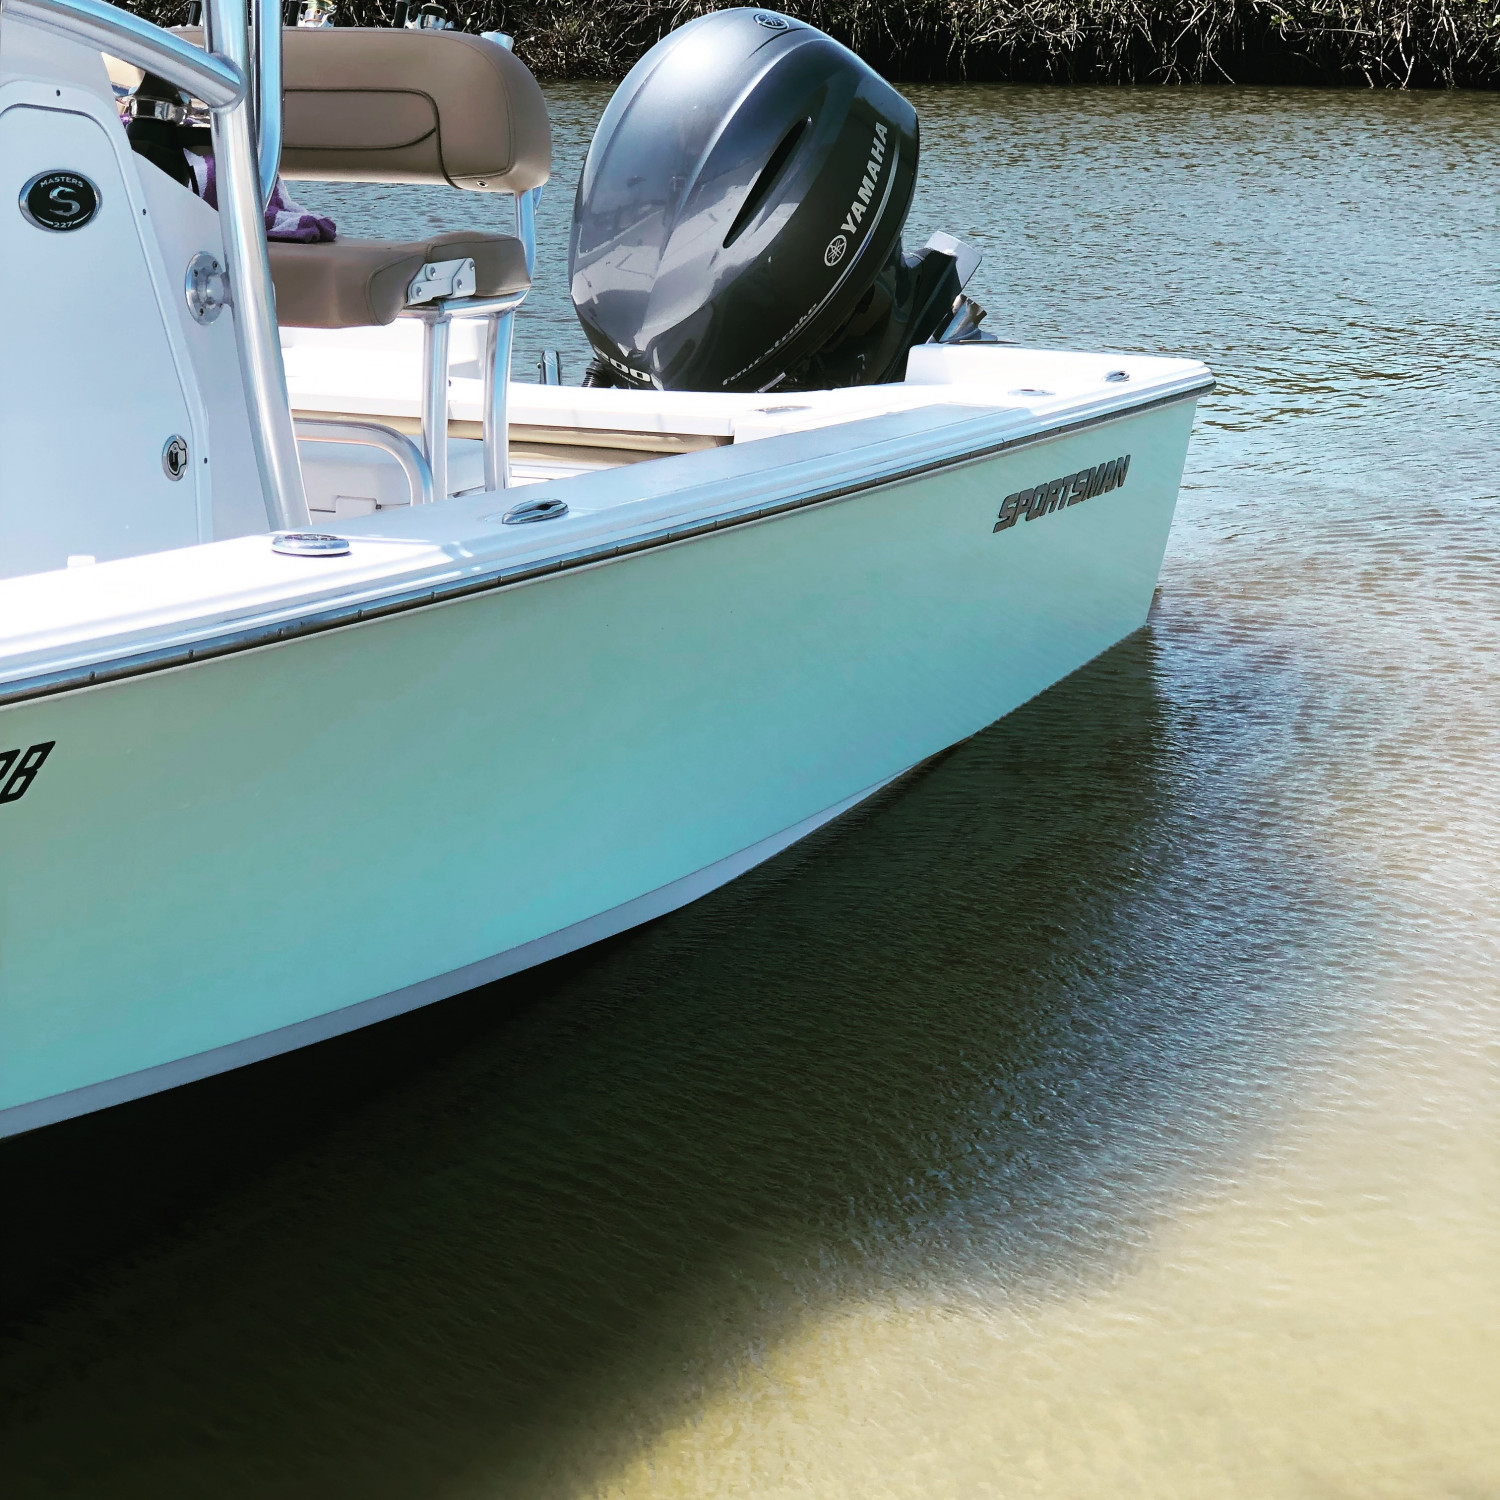 Title: Me and my baby - On board their Sportsman Masters 227 Bay Boat - Location: Ponce Inlet Florida. Participating in the Photo Contest #SportsmanMay2018